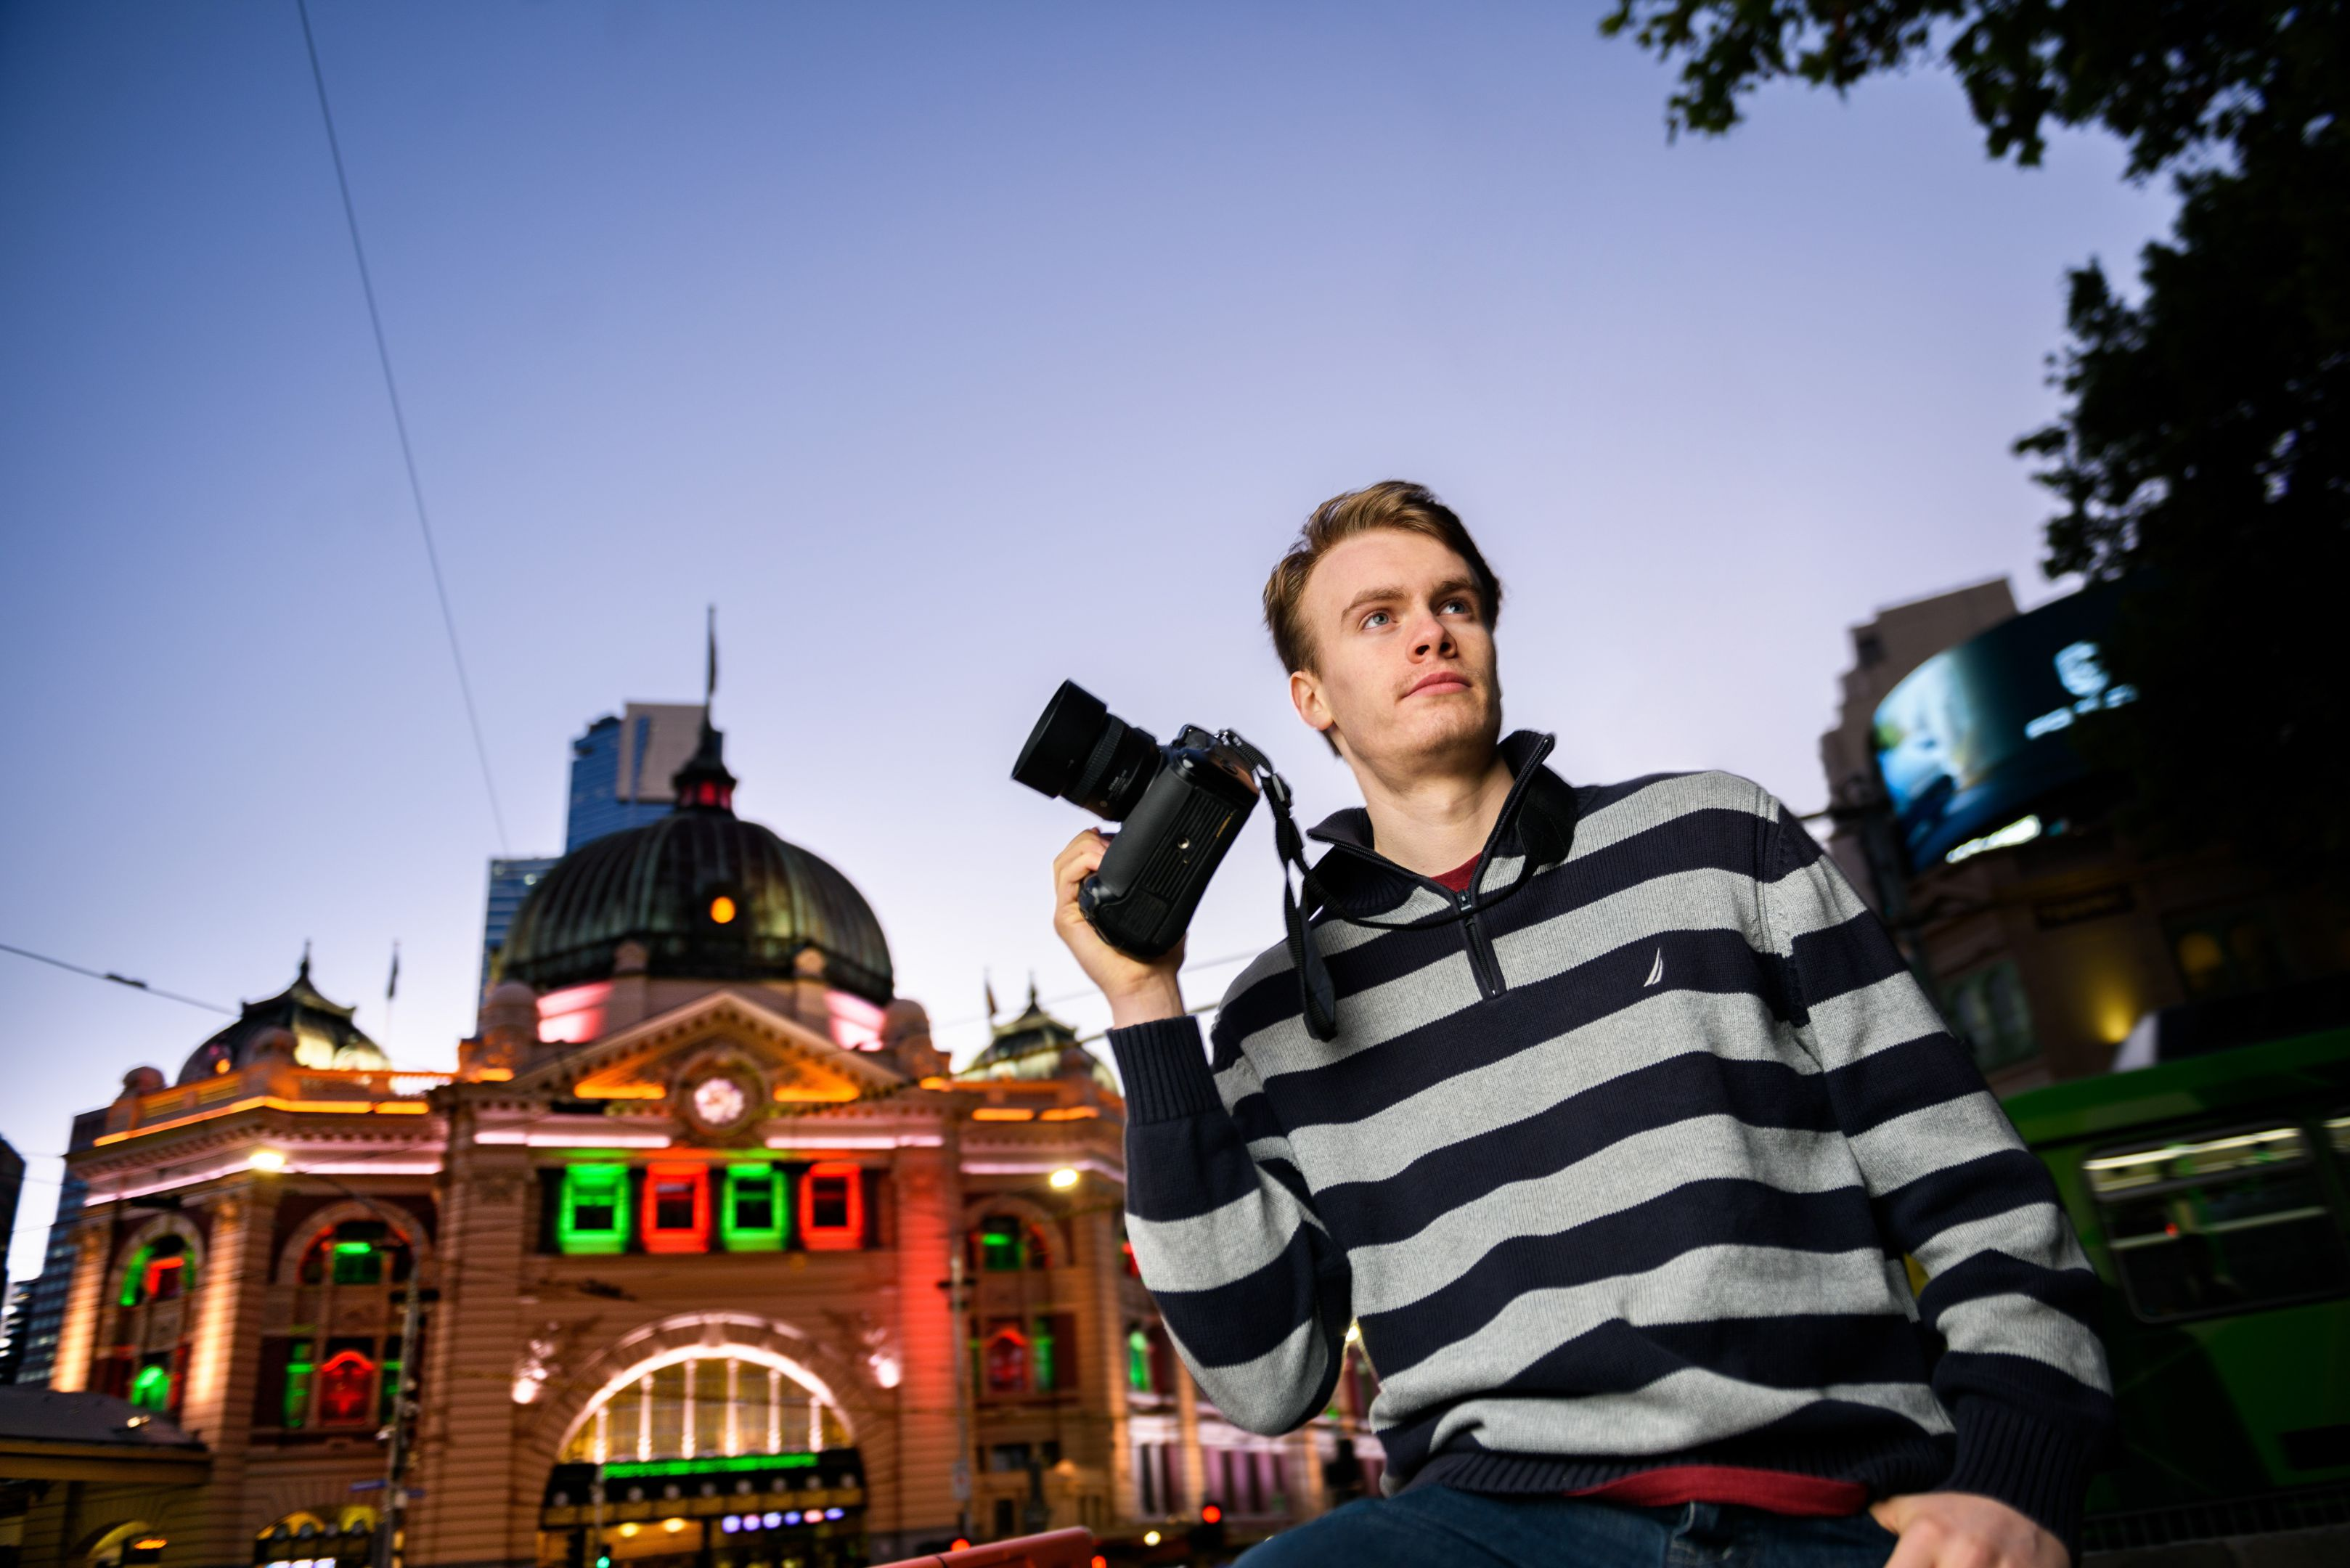 Jack Meehan Journalism Student at Flinders St Station with a camera in hand